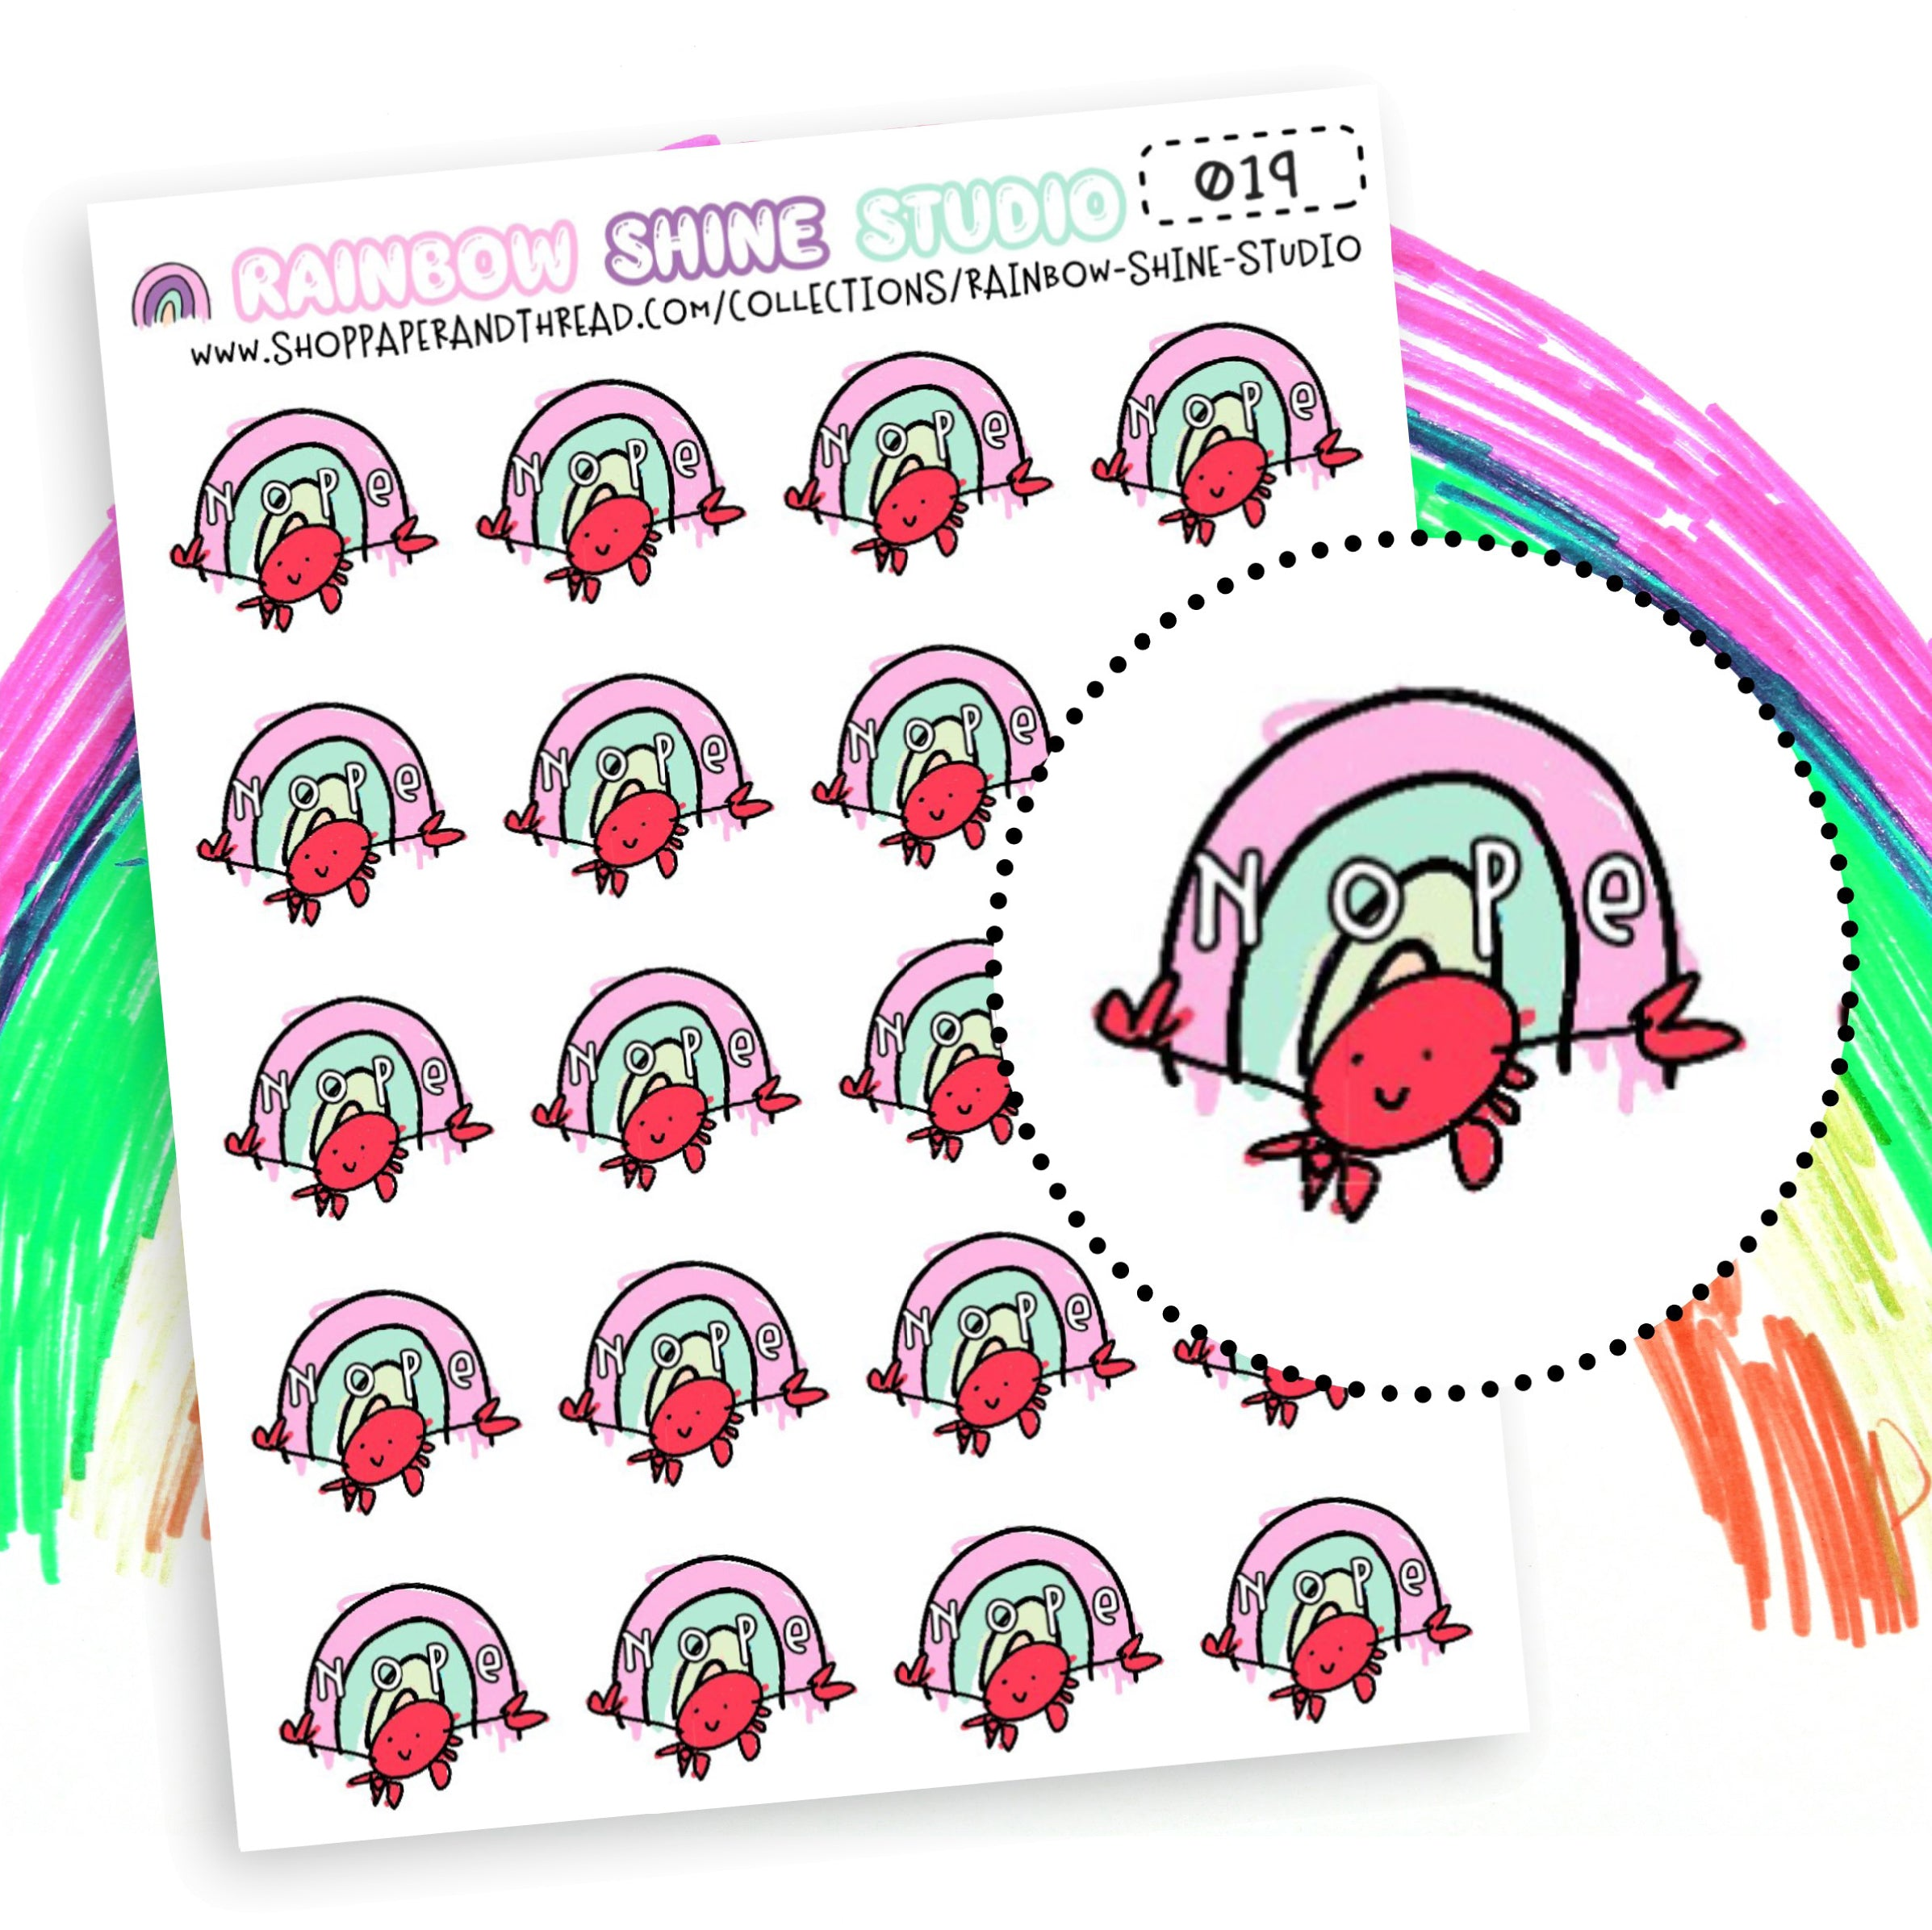 Nope Planner Stickers - Crab Planner Stickers - Rainbow Planner Stickers - Doodle Planner Stickers - Rainbow Shine Studio - 019